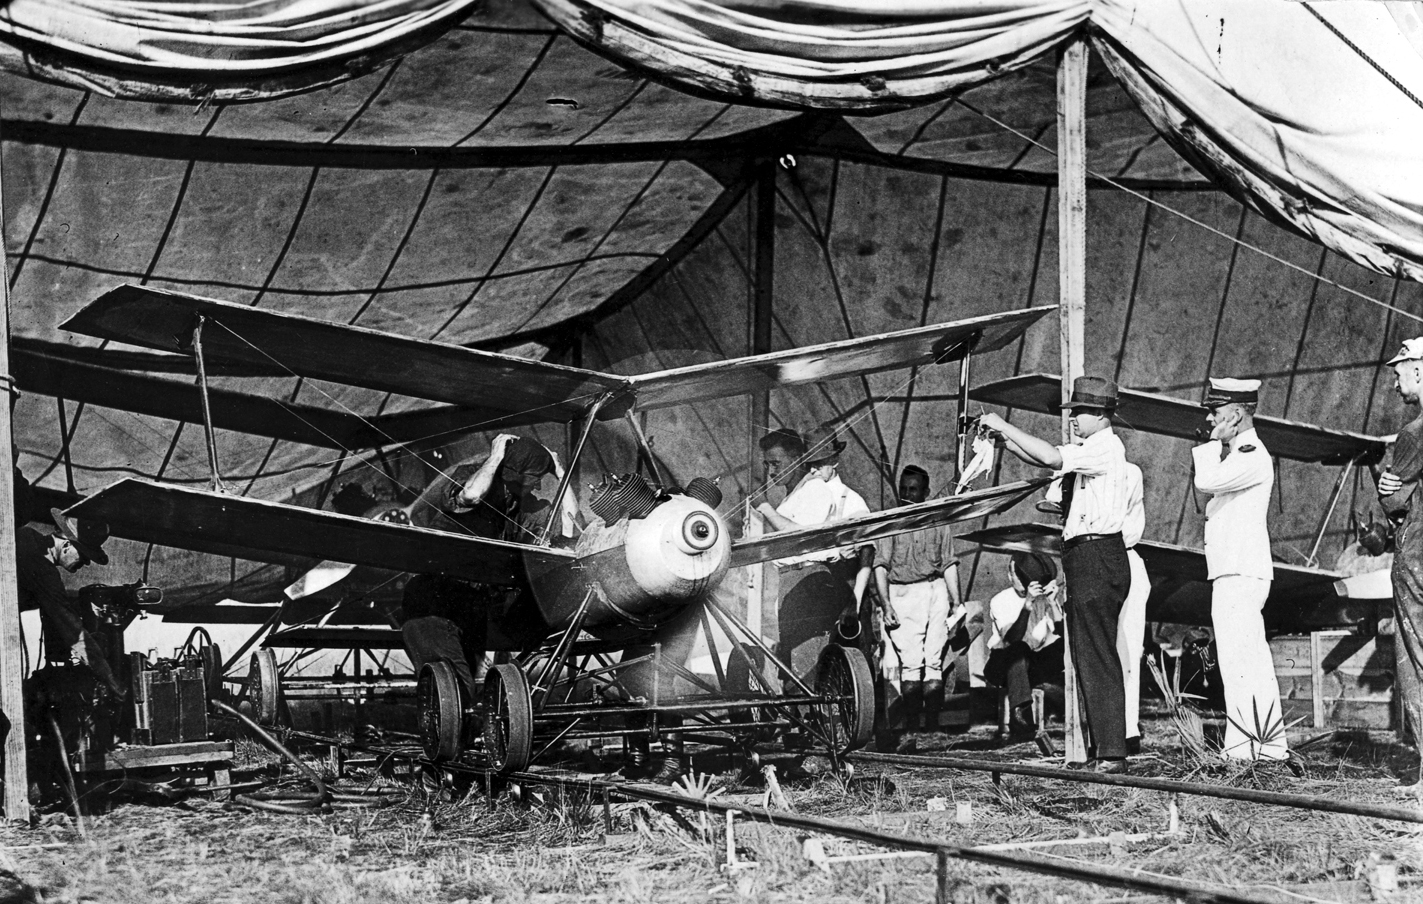 Launched on rails, the Kettering Bug was an aerial torpedo that anticipated both drones and cruise missiles. (Army)